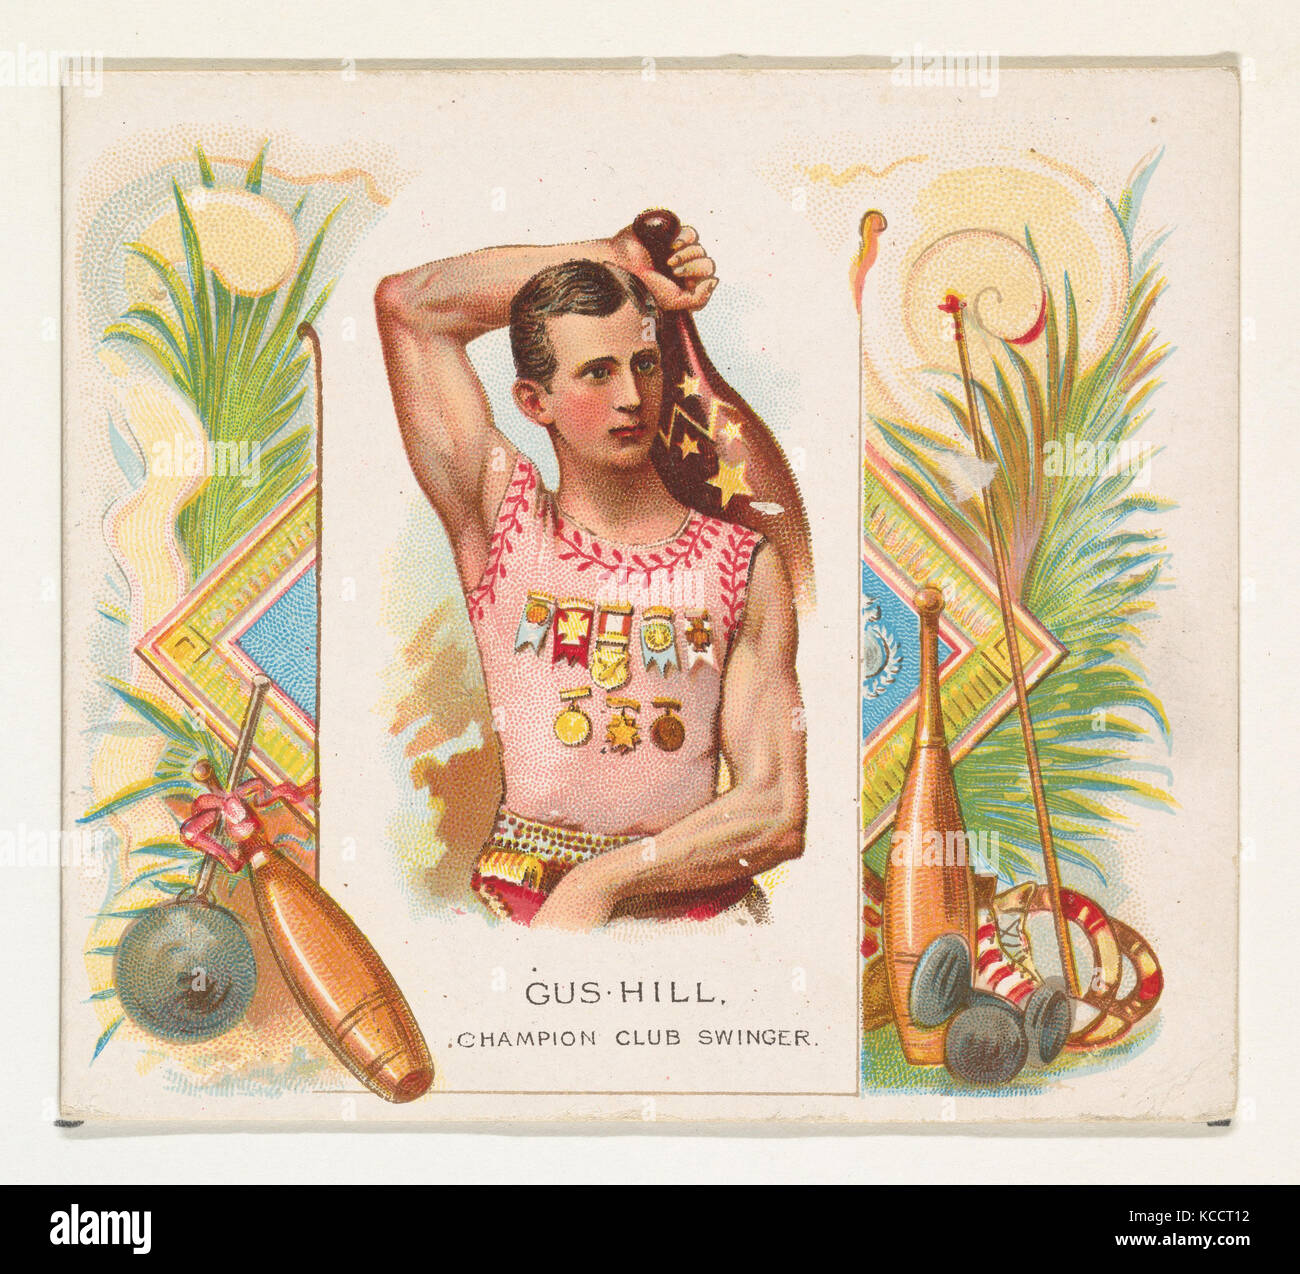 Gus Hill, Champion Club Swinger, from World's Champions, Second Series (N43) for Allen & Ginter Cigarettes, - Stock Image